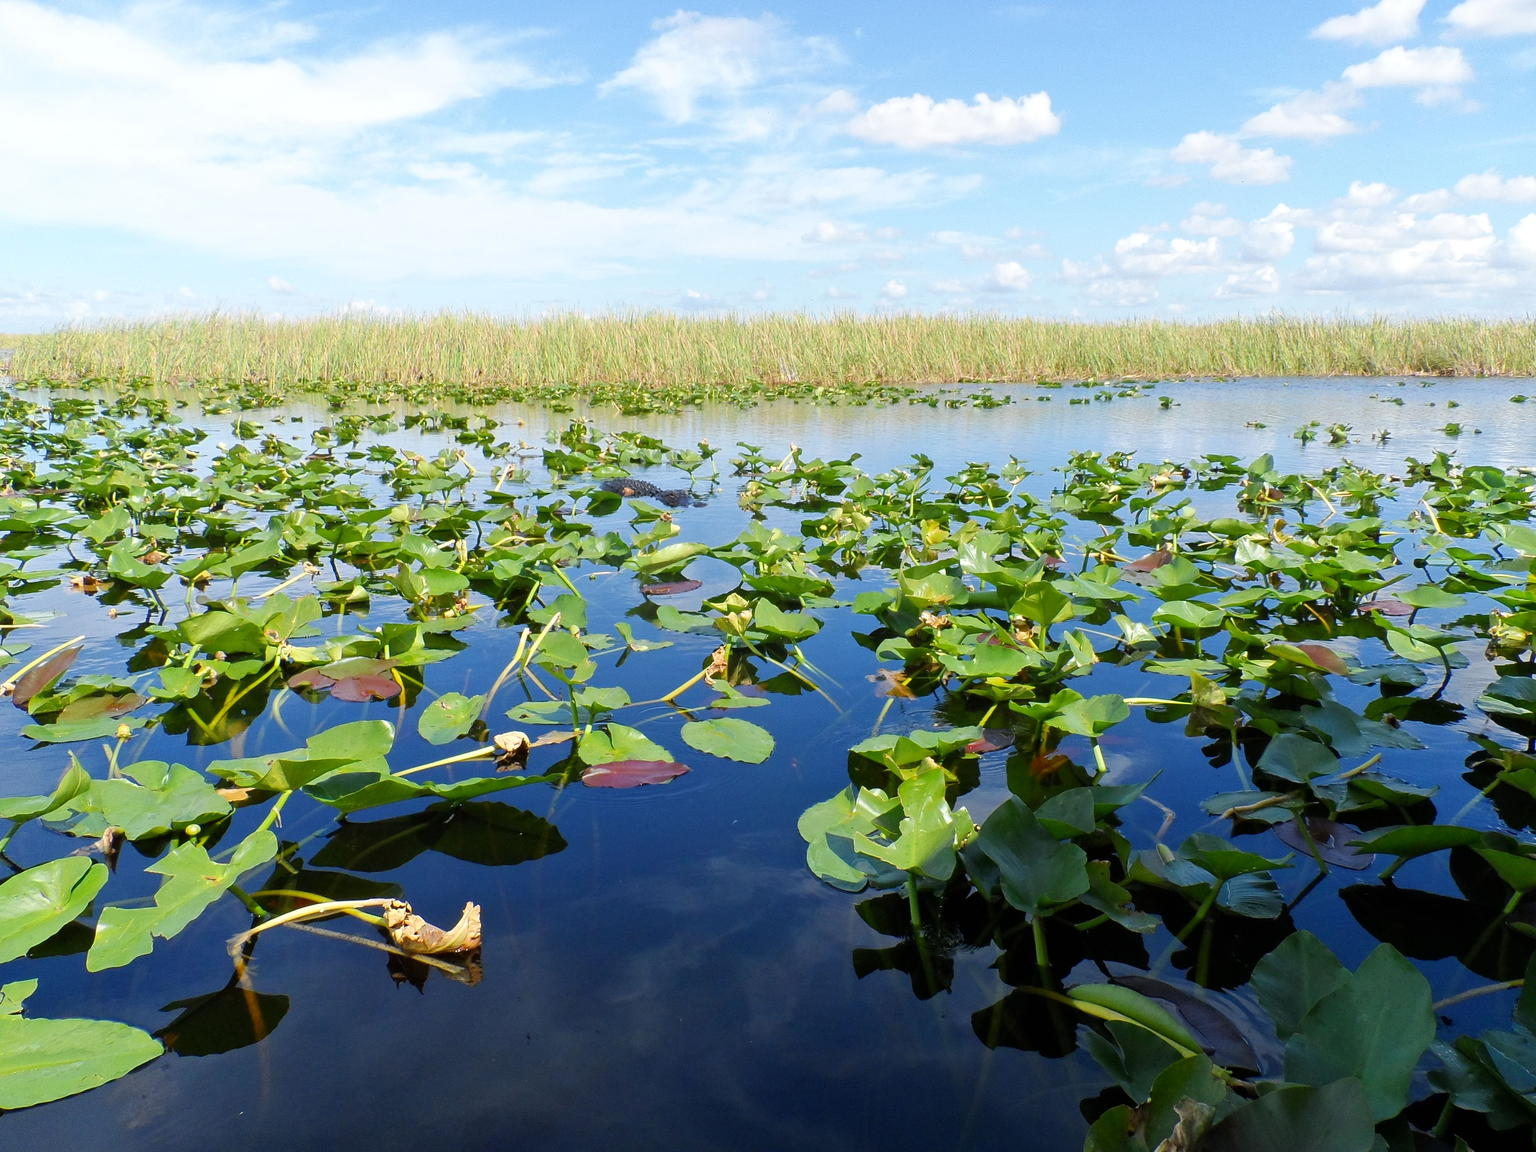 Florida Everglades Airboat Tour and Alligator Show from Fort Lauderdale